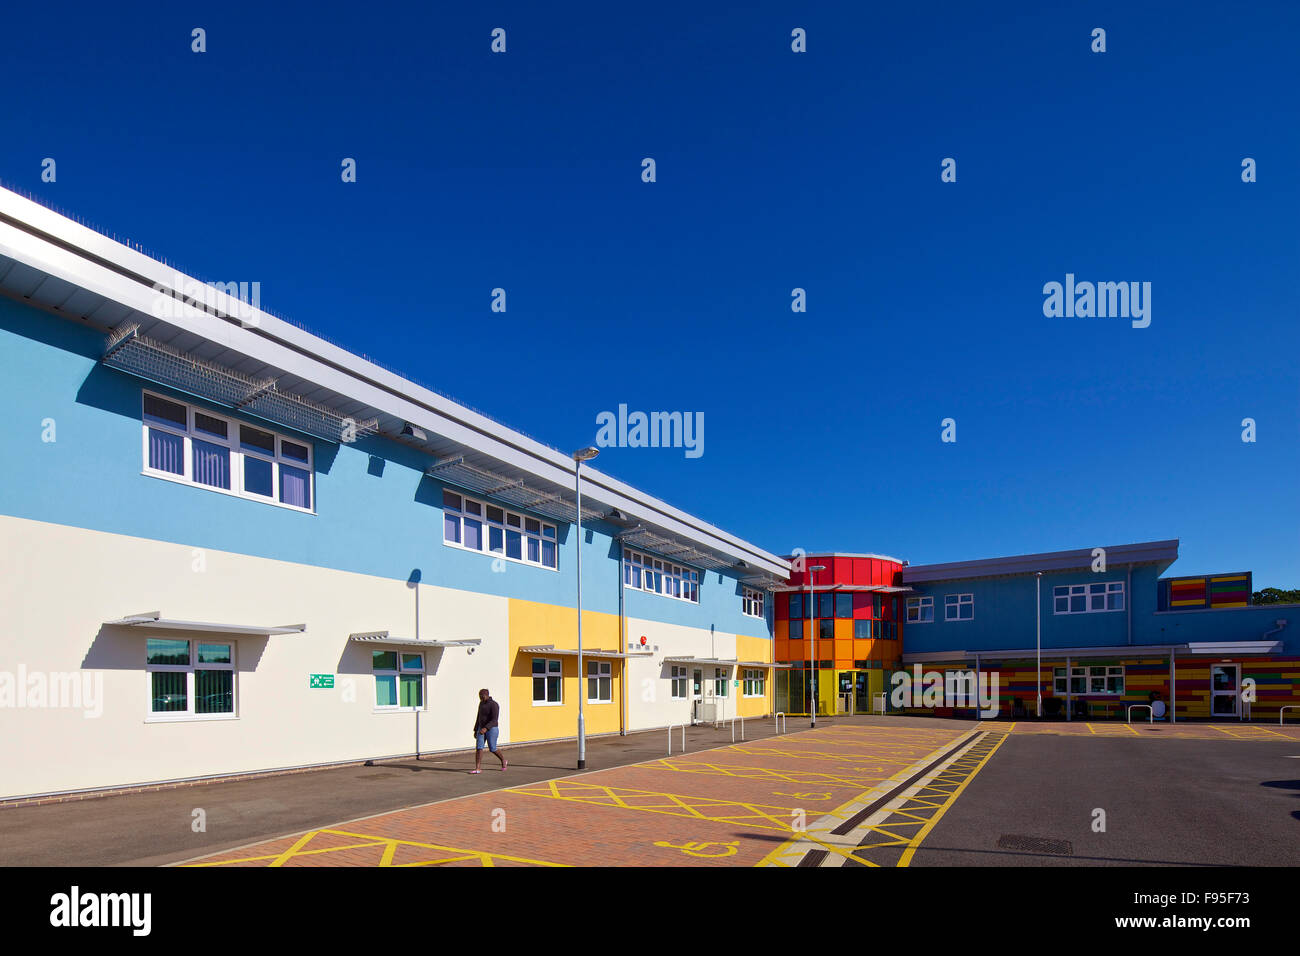 Marsh Farm Children's Centre for Excellence. Multi-coloured exterior of the Centre and its car park. - Stock Image